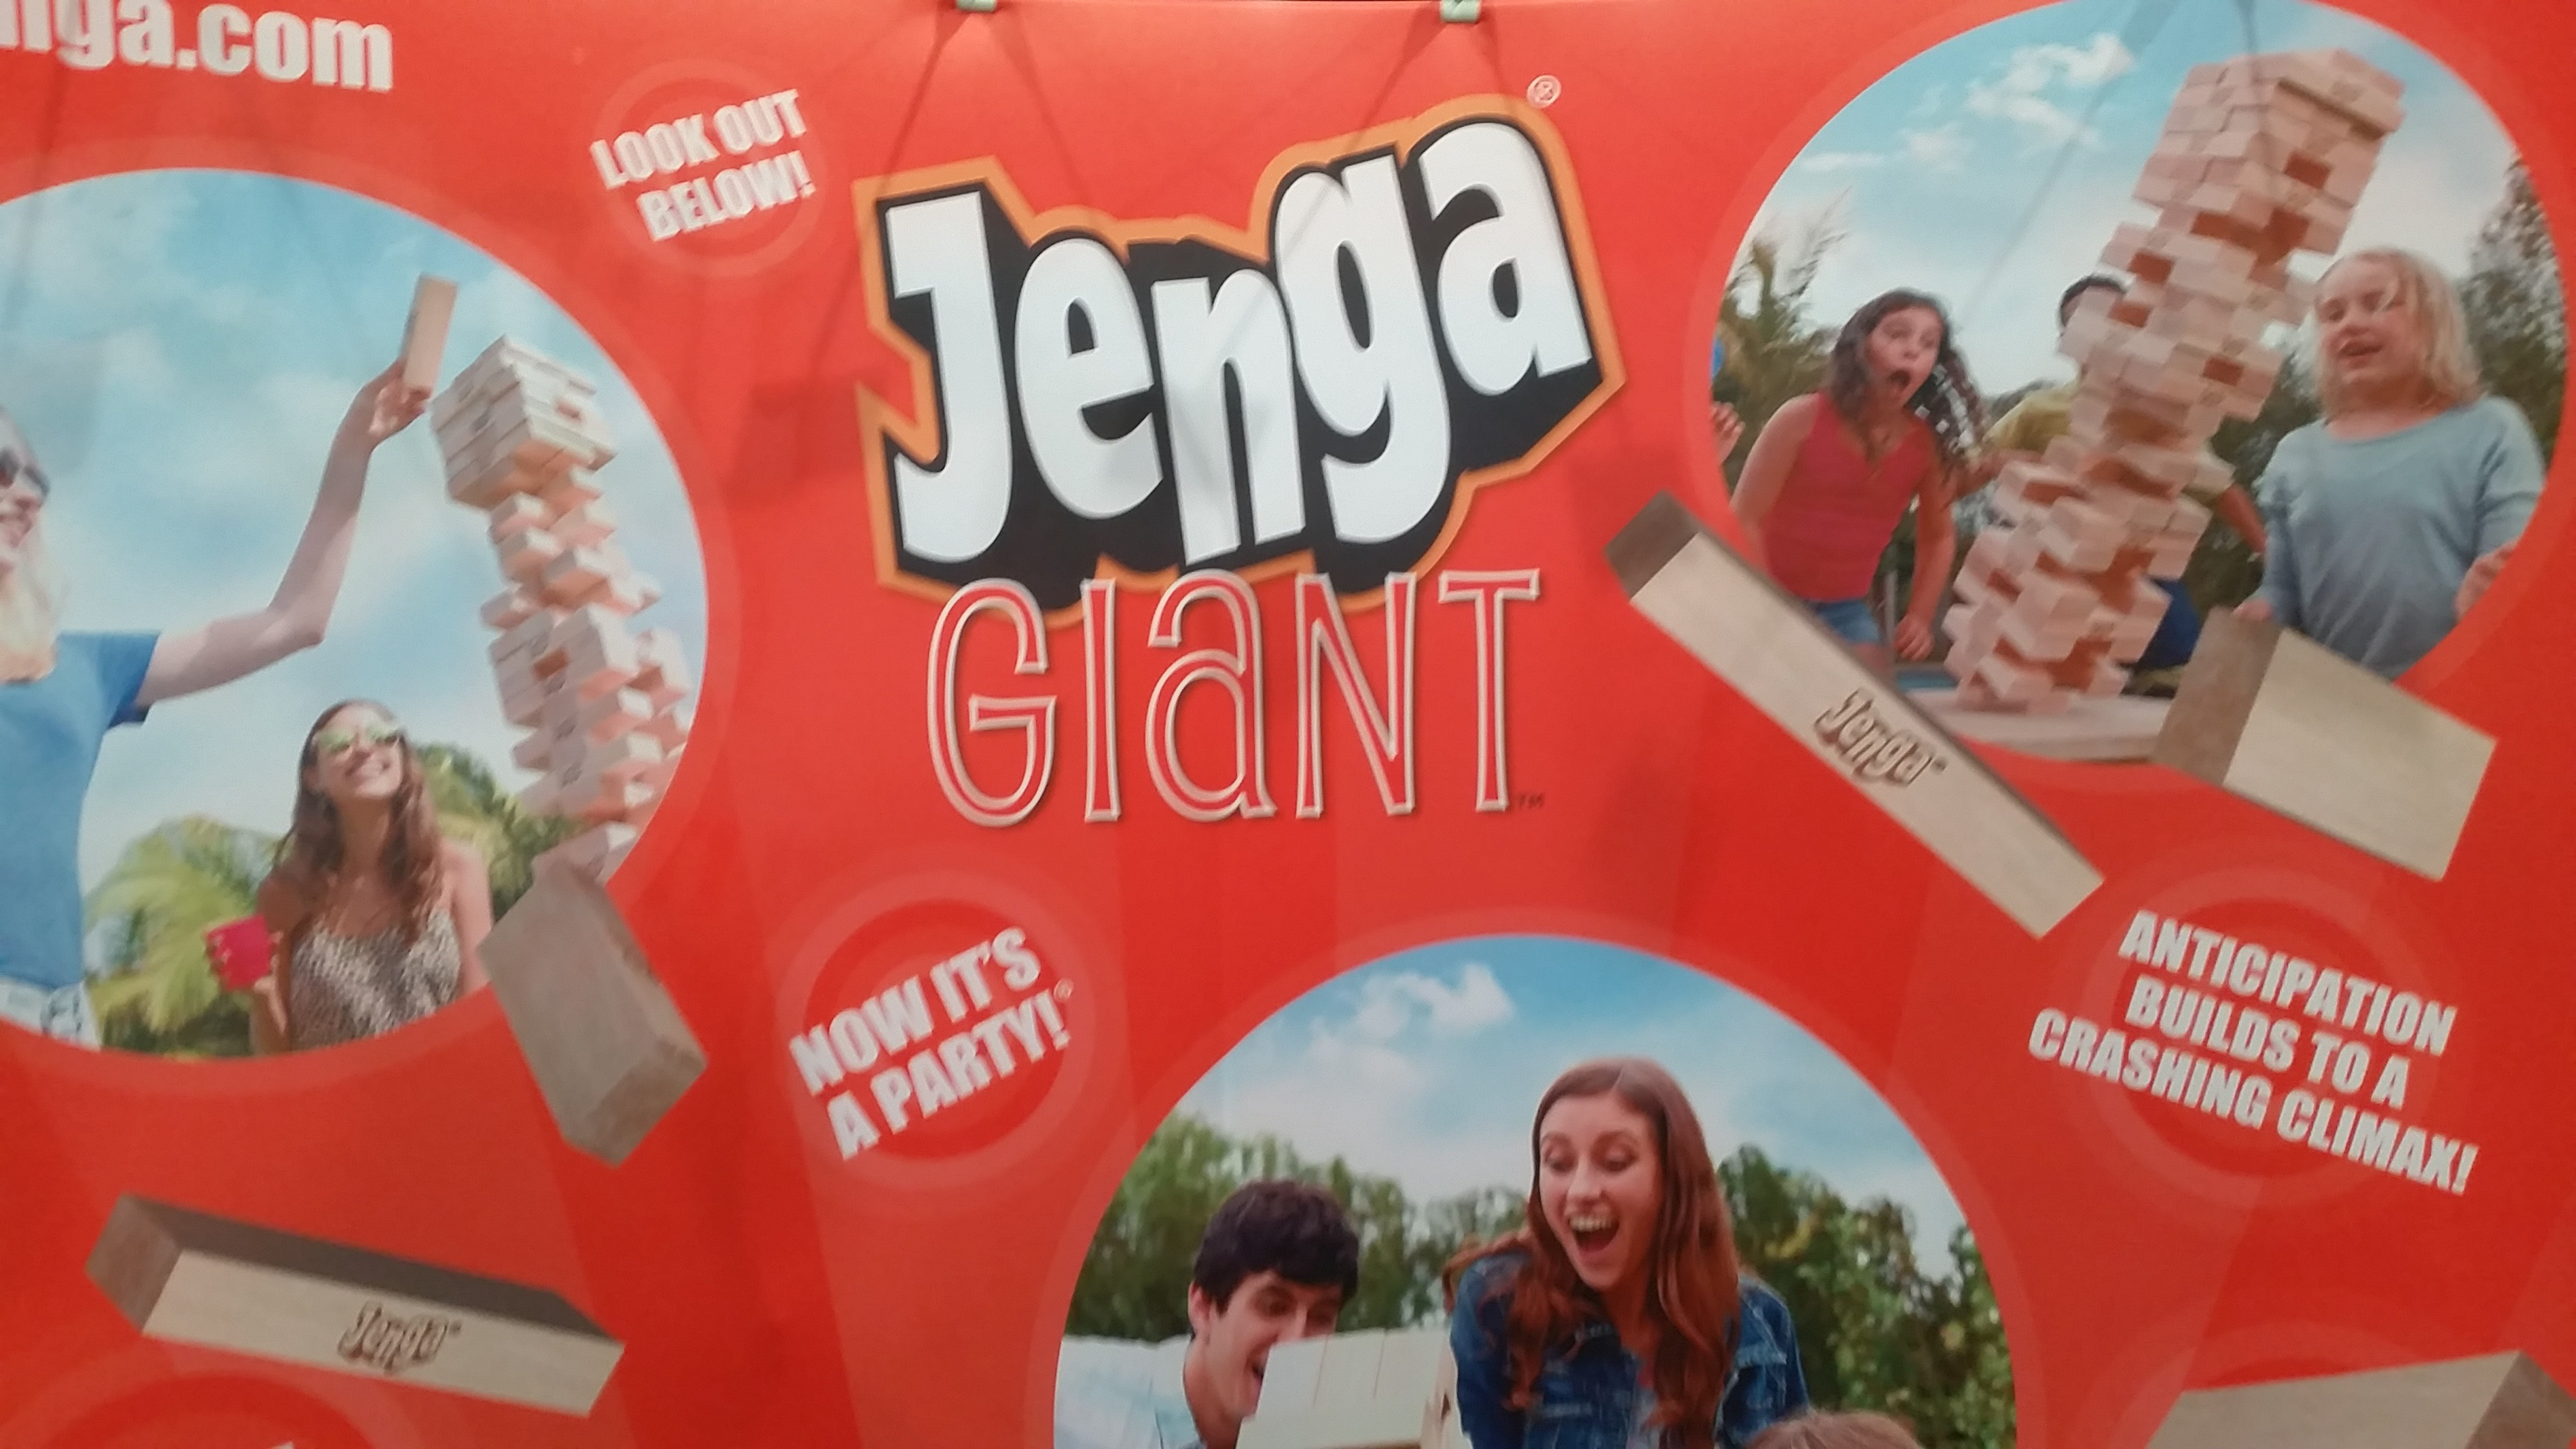 Jenga Giant - NCB Show 2016 Intriguing Products - Bar-i Bar Inventory